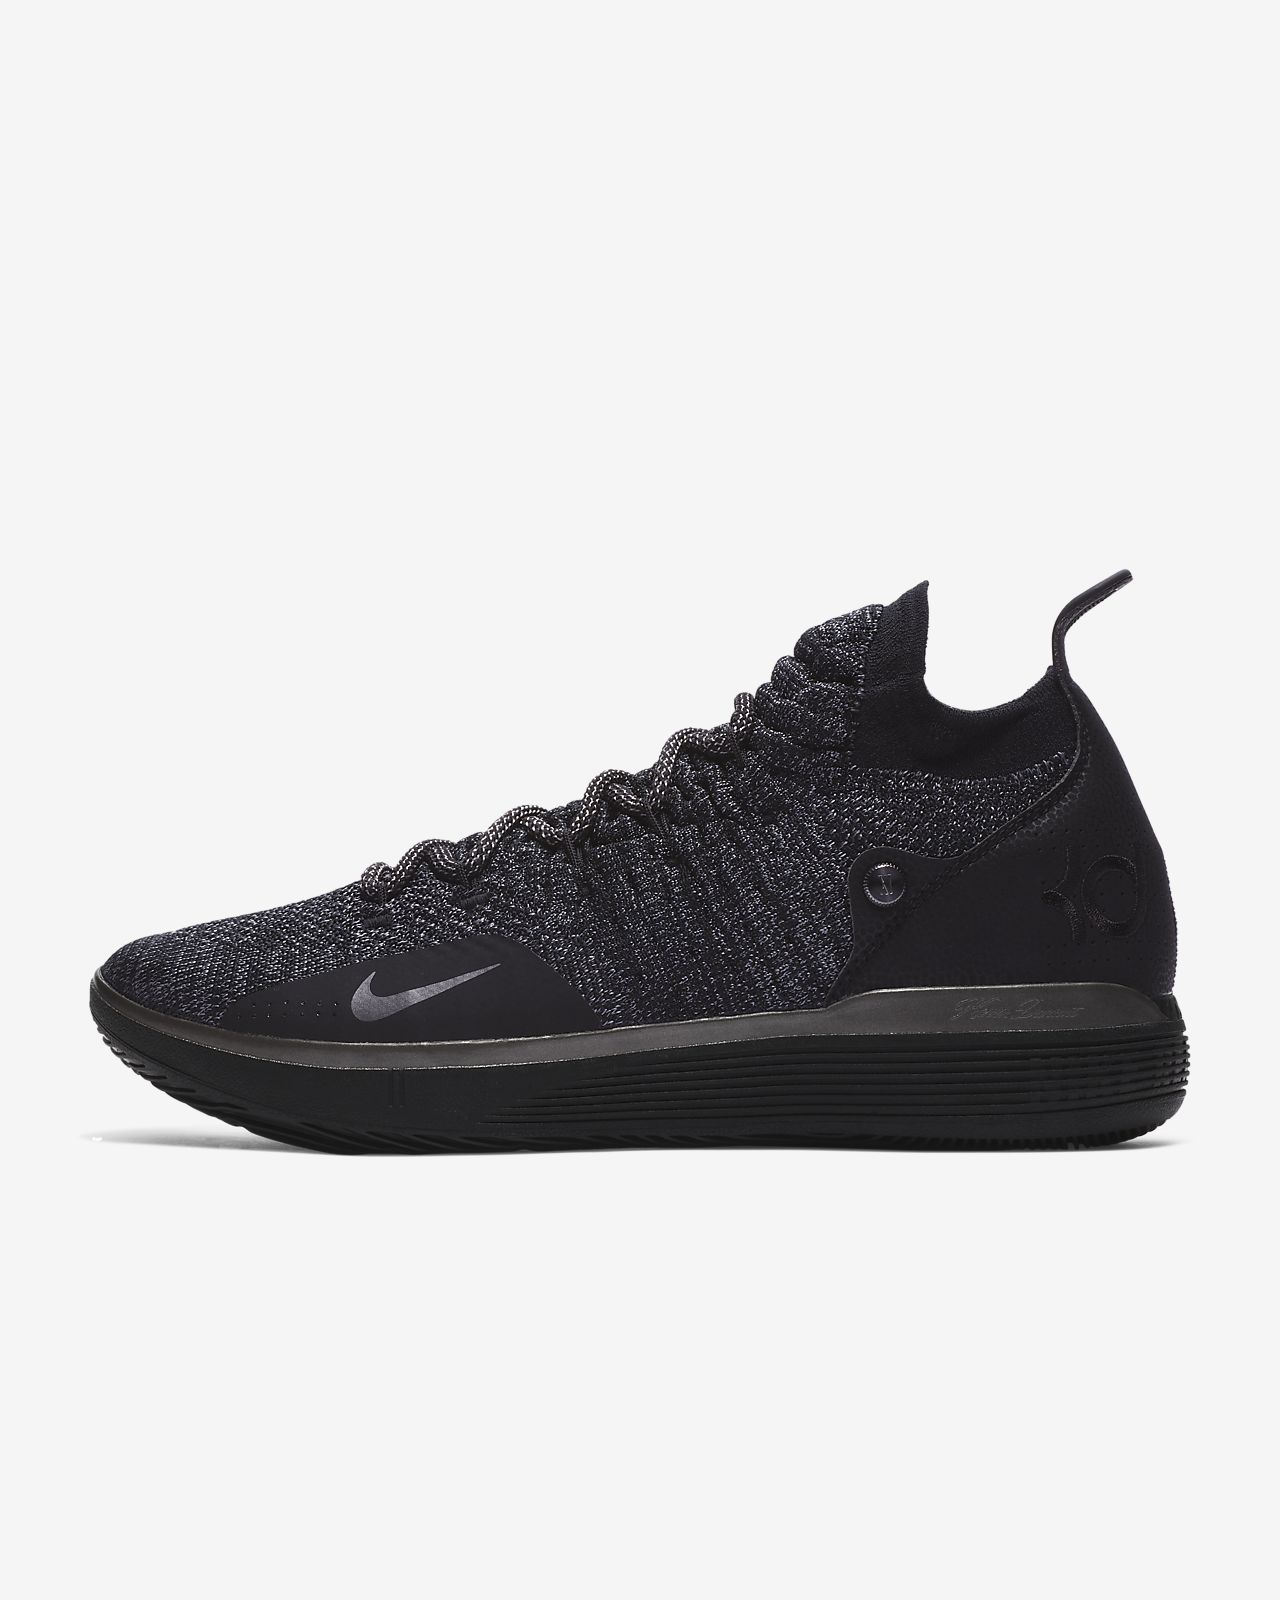 28b339f46ae2 Nike Zoom KD11 Basketball Shoe. Nike.com GB